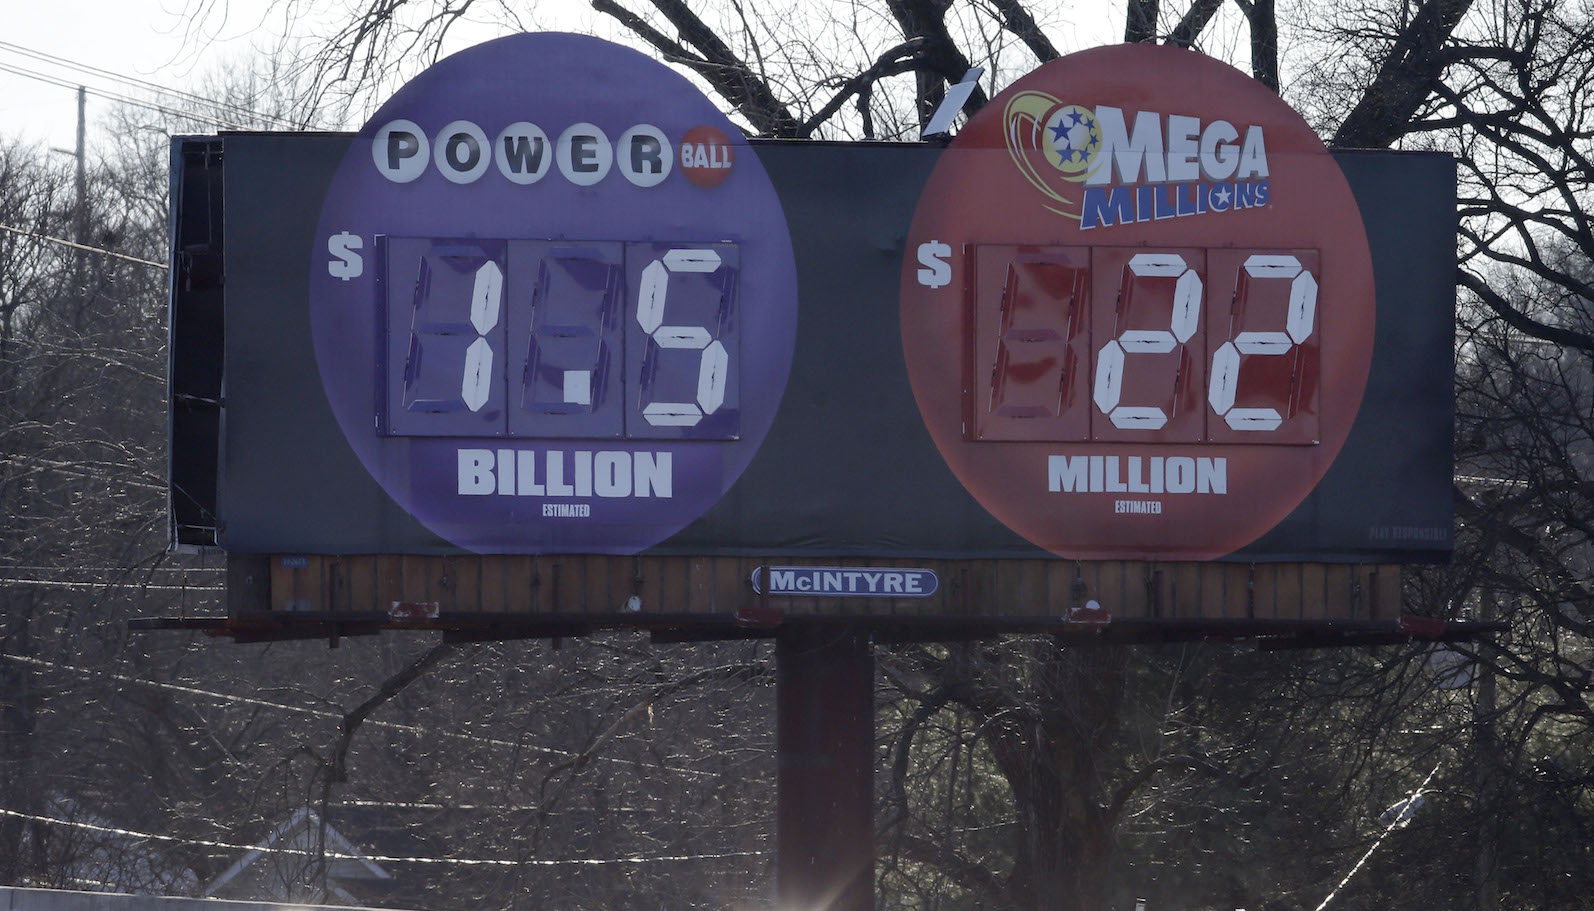 These are the Powerball winning lottery numbers for Jan  13, 2016